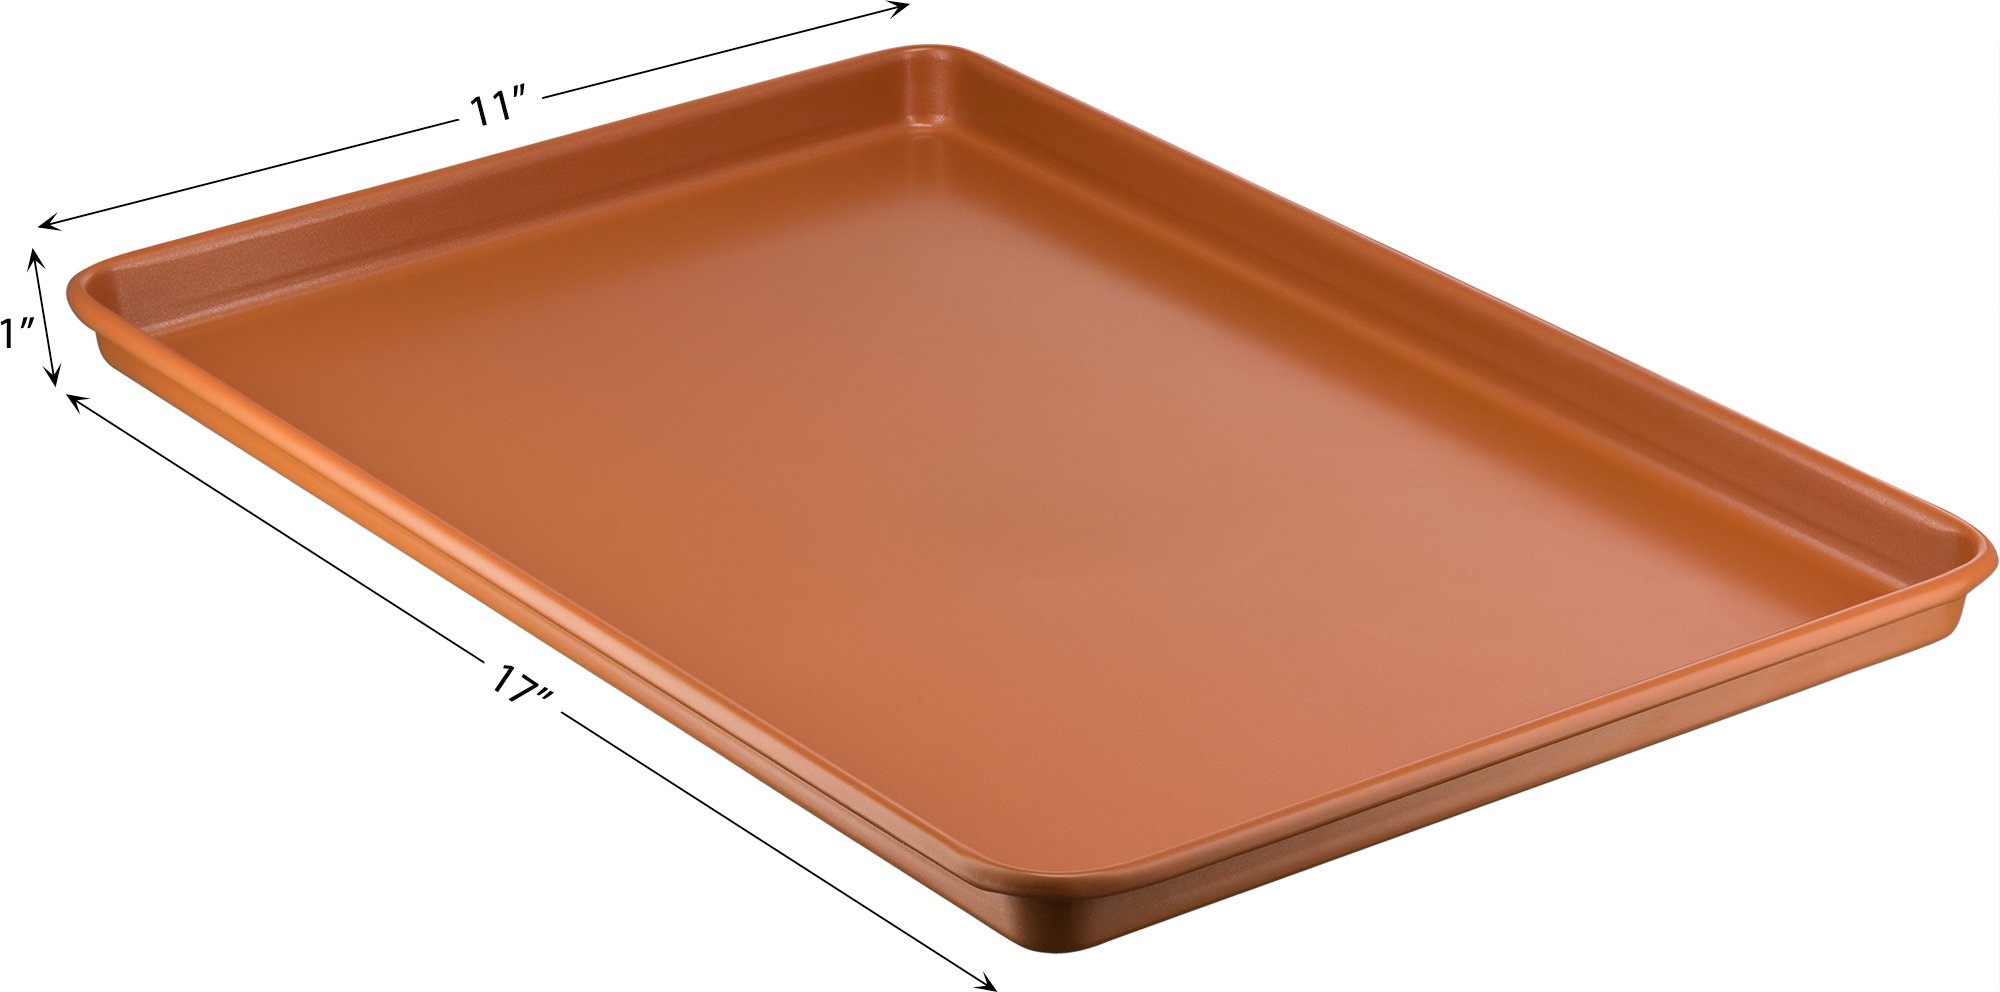 Ceramic Coated Cookie Sheet 17.3'' x 11.6'' - Premium Nonstick, Even Baking, Dishwasher and Oven Safe - PTFE/PFOA Free - Red Cookware and Bakeware by Bovado USA by BOVADO USA (Image #6)